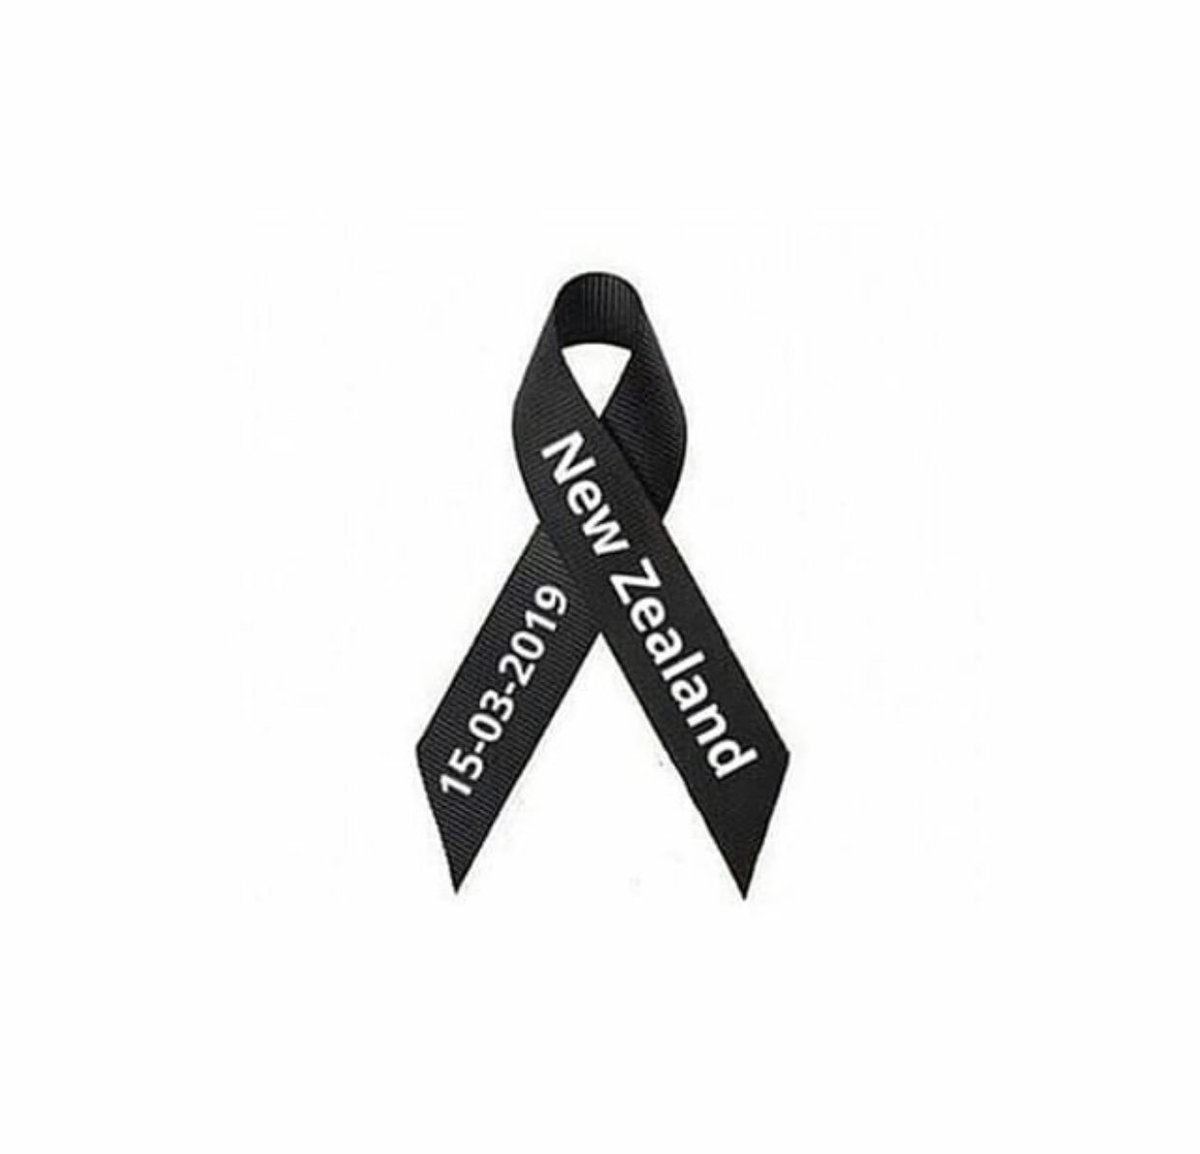 Praying for peace 😔 #prayfornewzealand